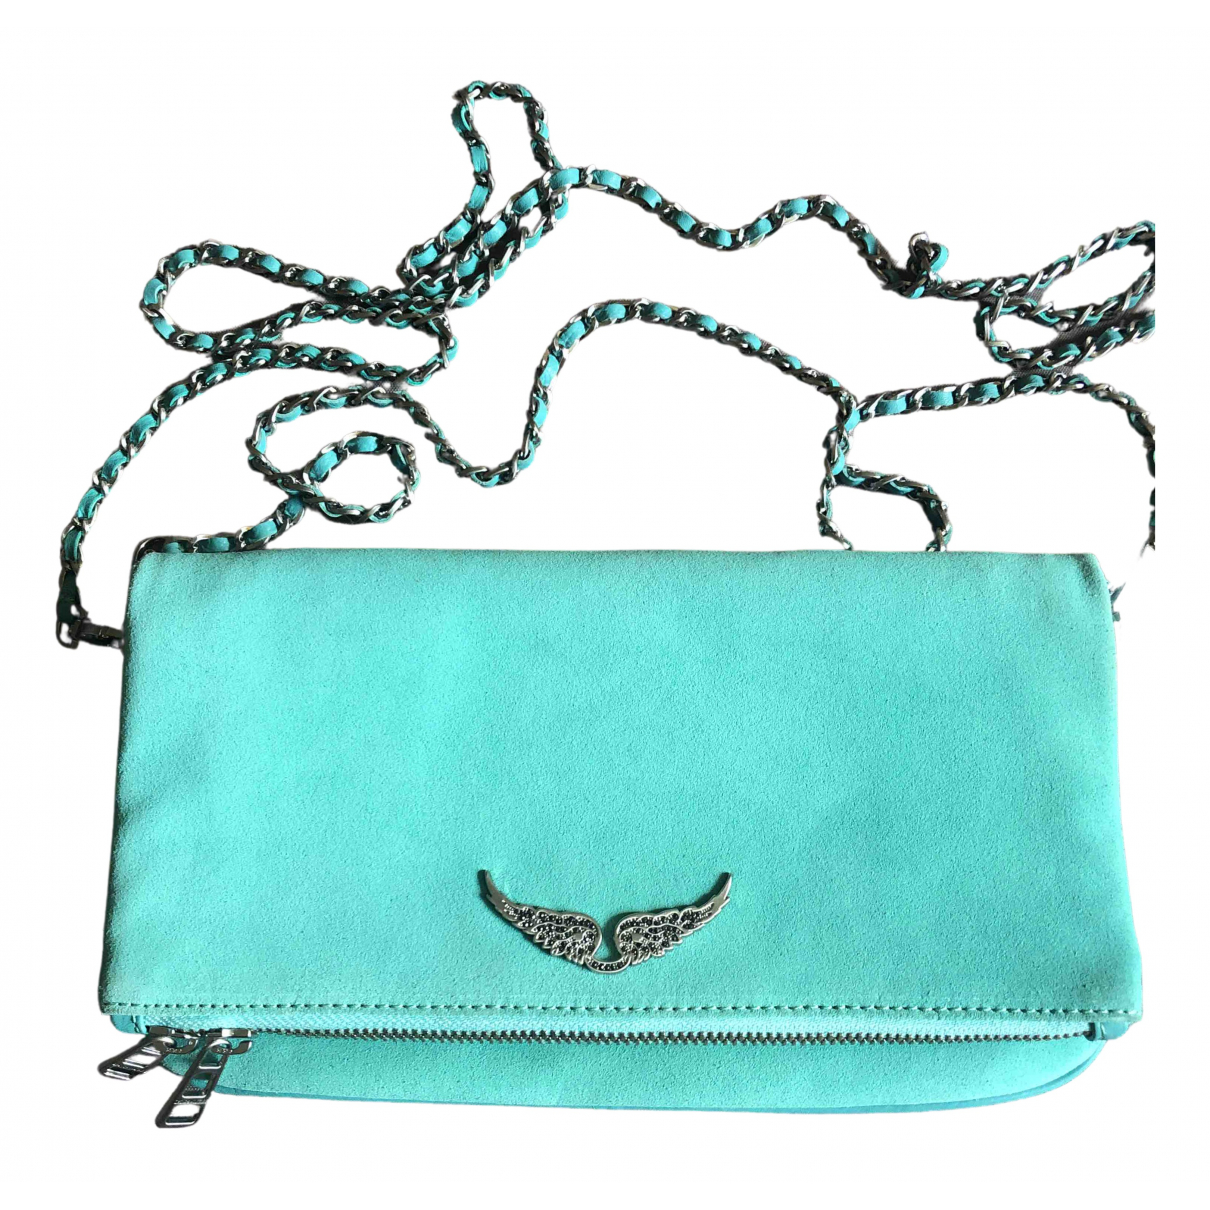 Zadig & Voltaire Spring Summer 2019 Turquoise Leather handbag for Women \N